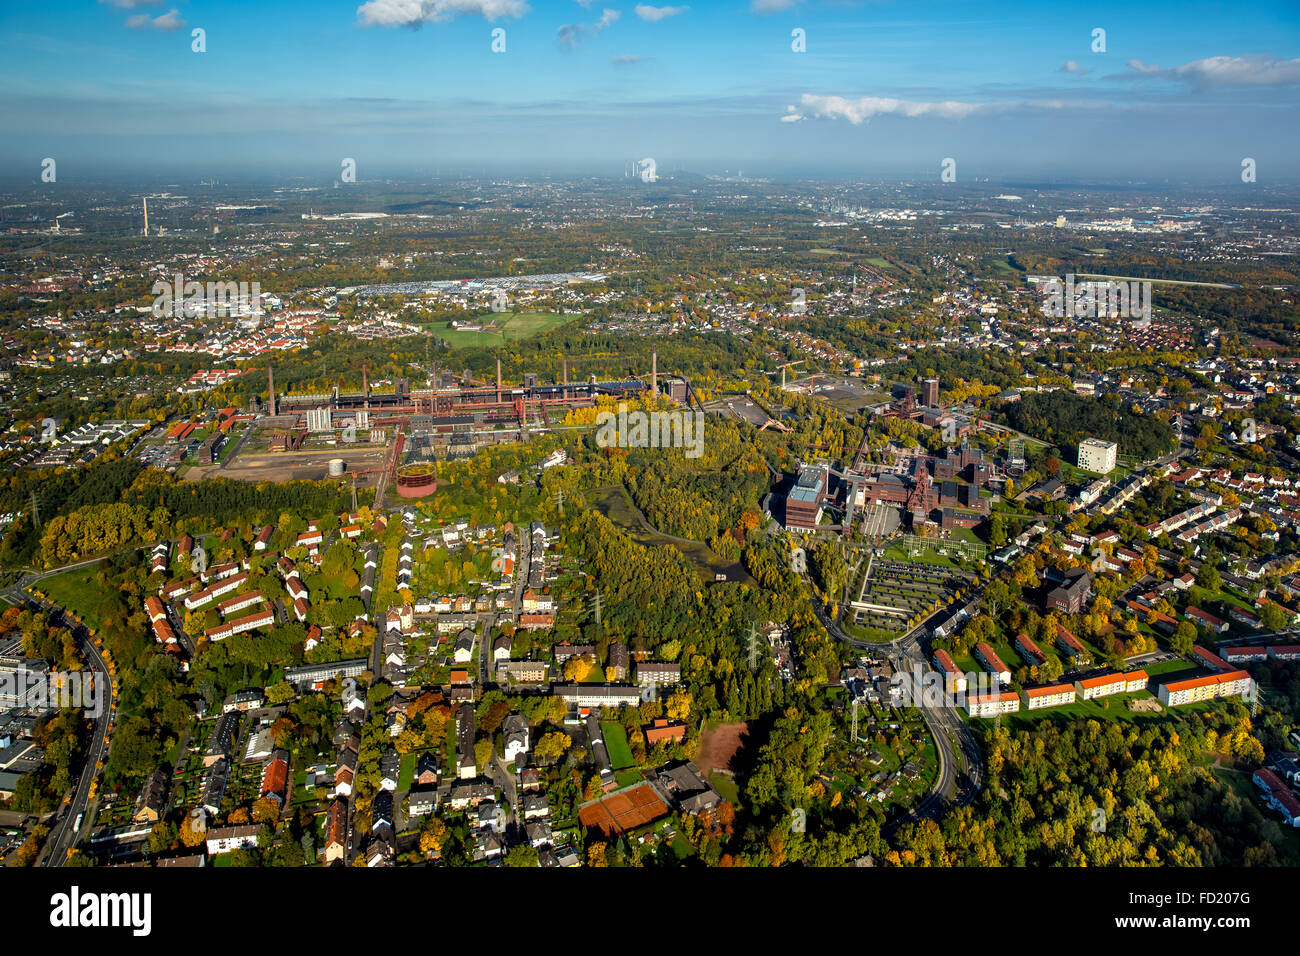 View of city and Zollverein Coal Mine Industrial Complex, autumn, Essen, Ruhr district, North Rhine-Westphalia, - Stock Image